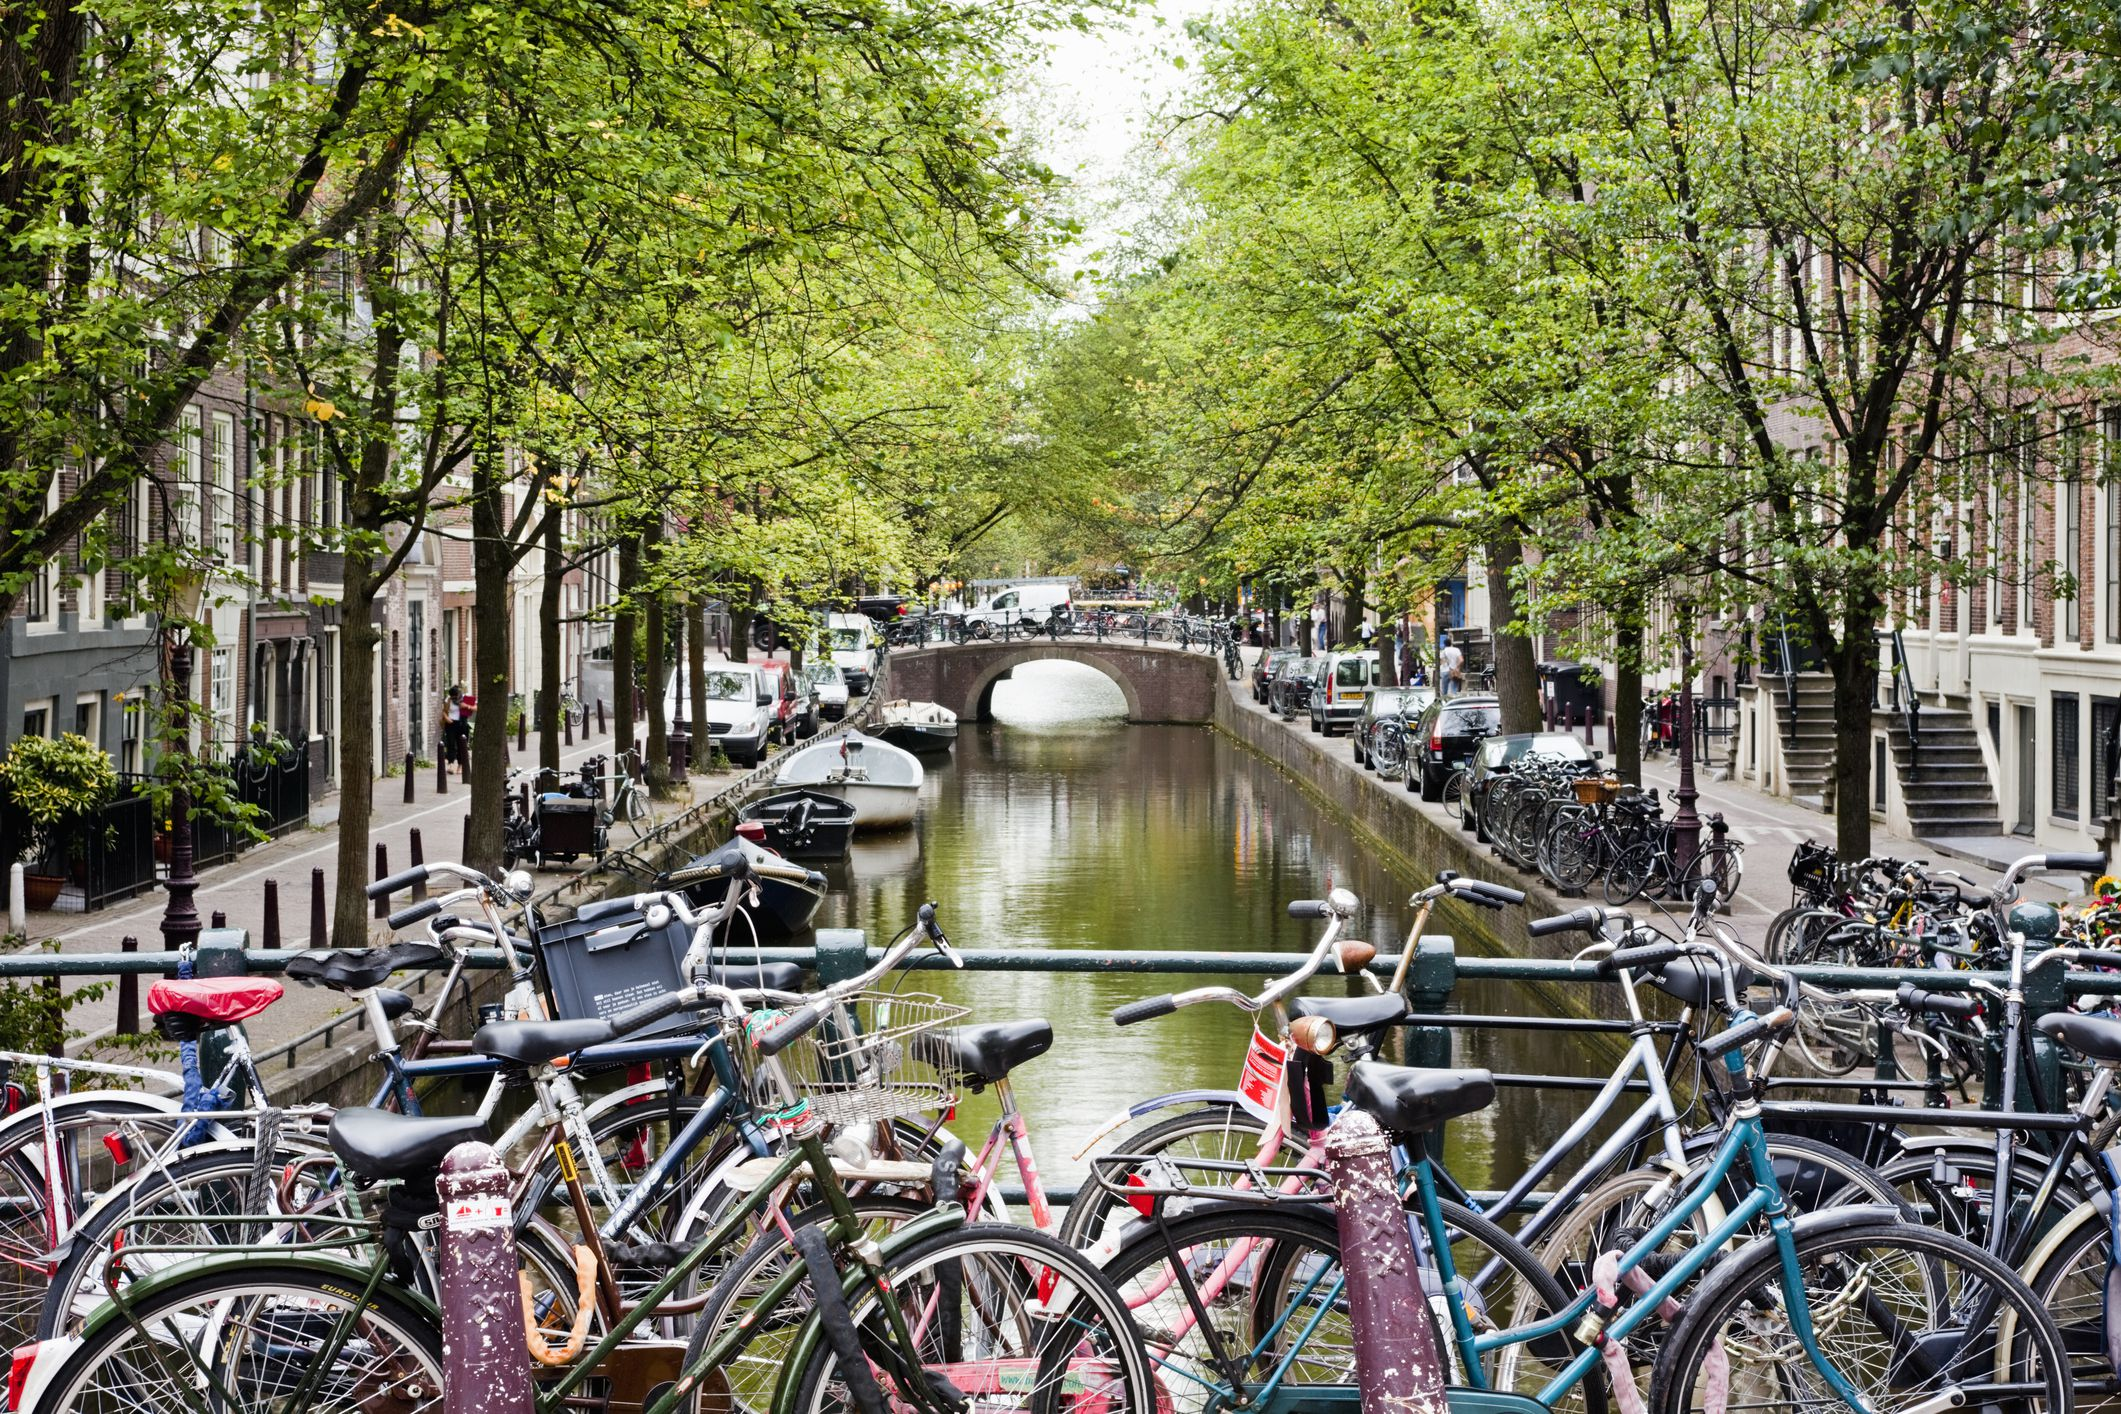 Bicycles parked on bridge over Bloemgracht canal